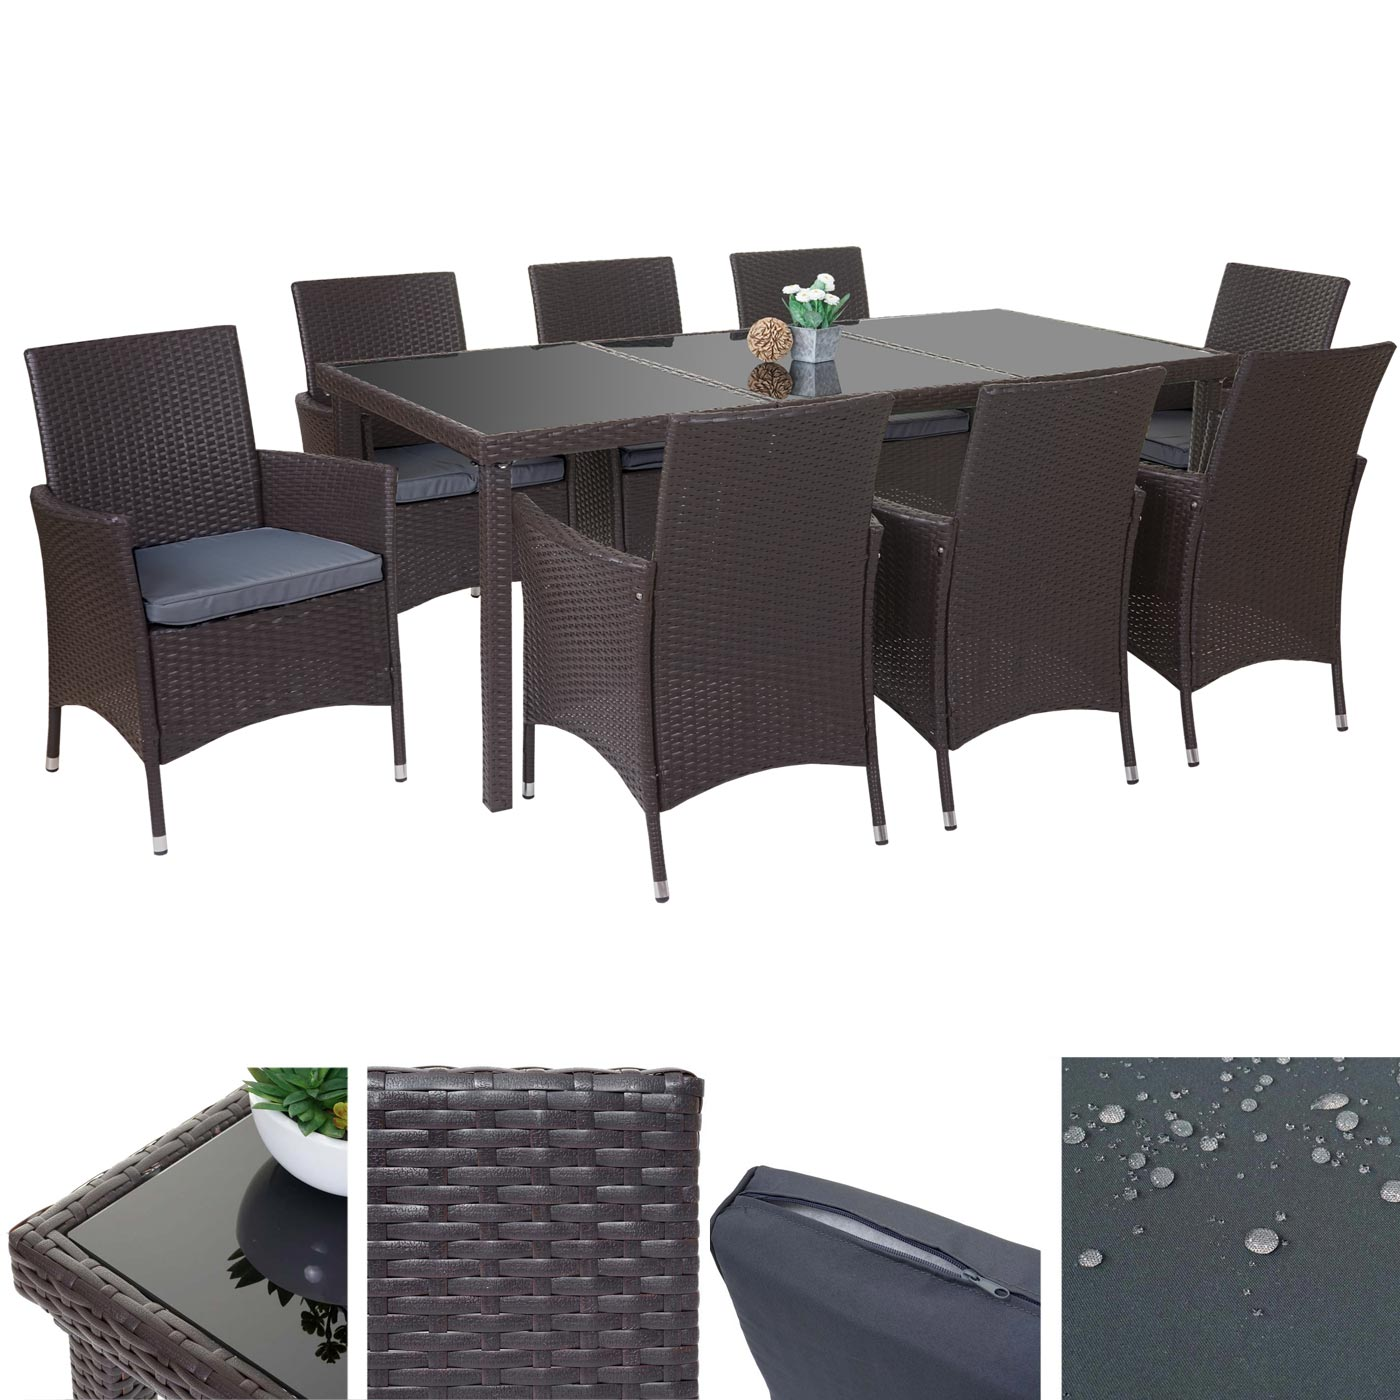 poly rattan garnitur terni garten sitzgruppe tisch 8 sessel alu braun kissen grau. Black Bedroom Furniture Sets. Home Design Ideas